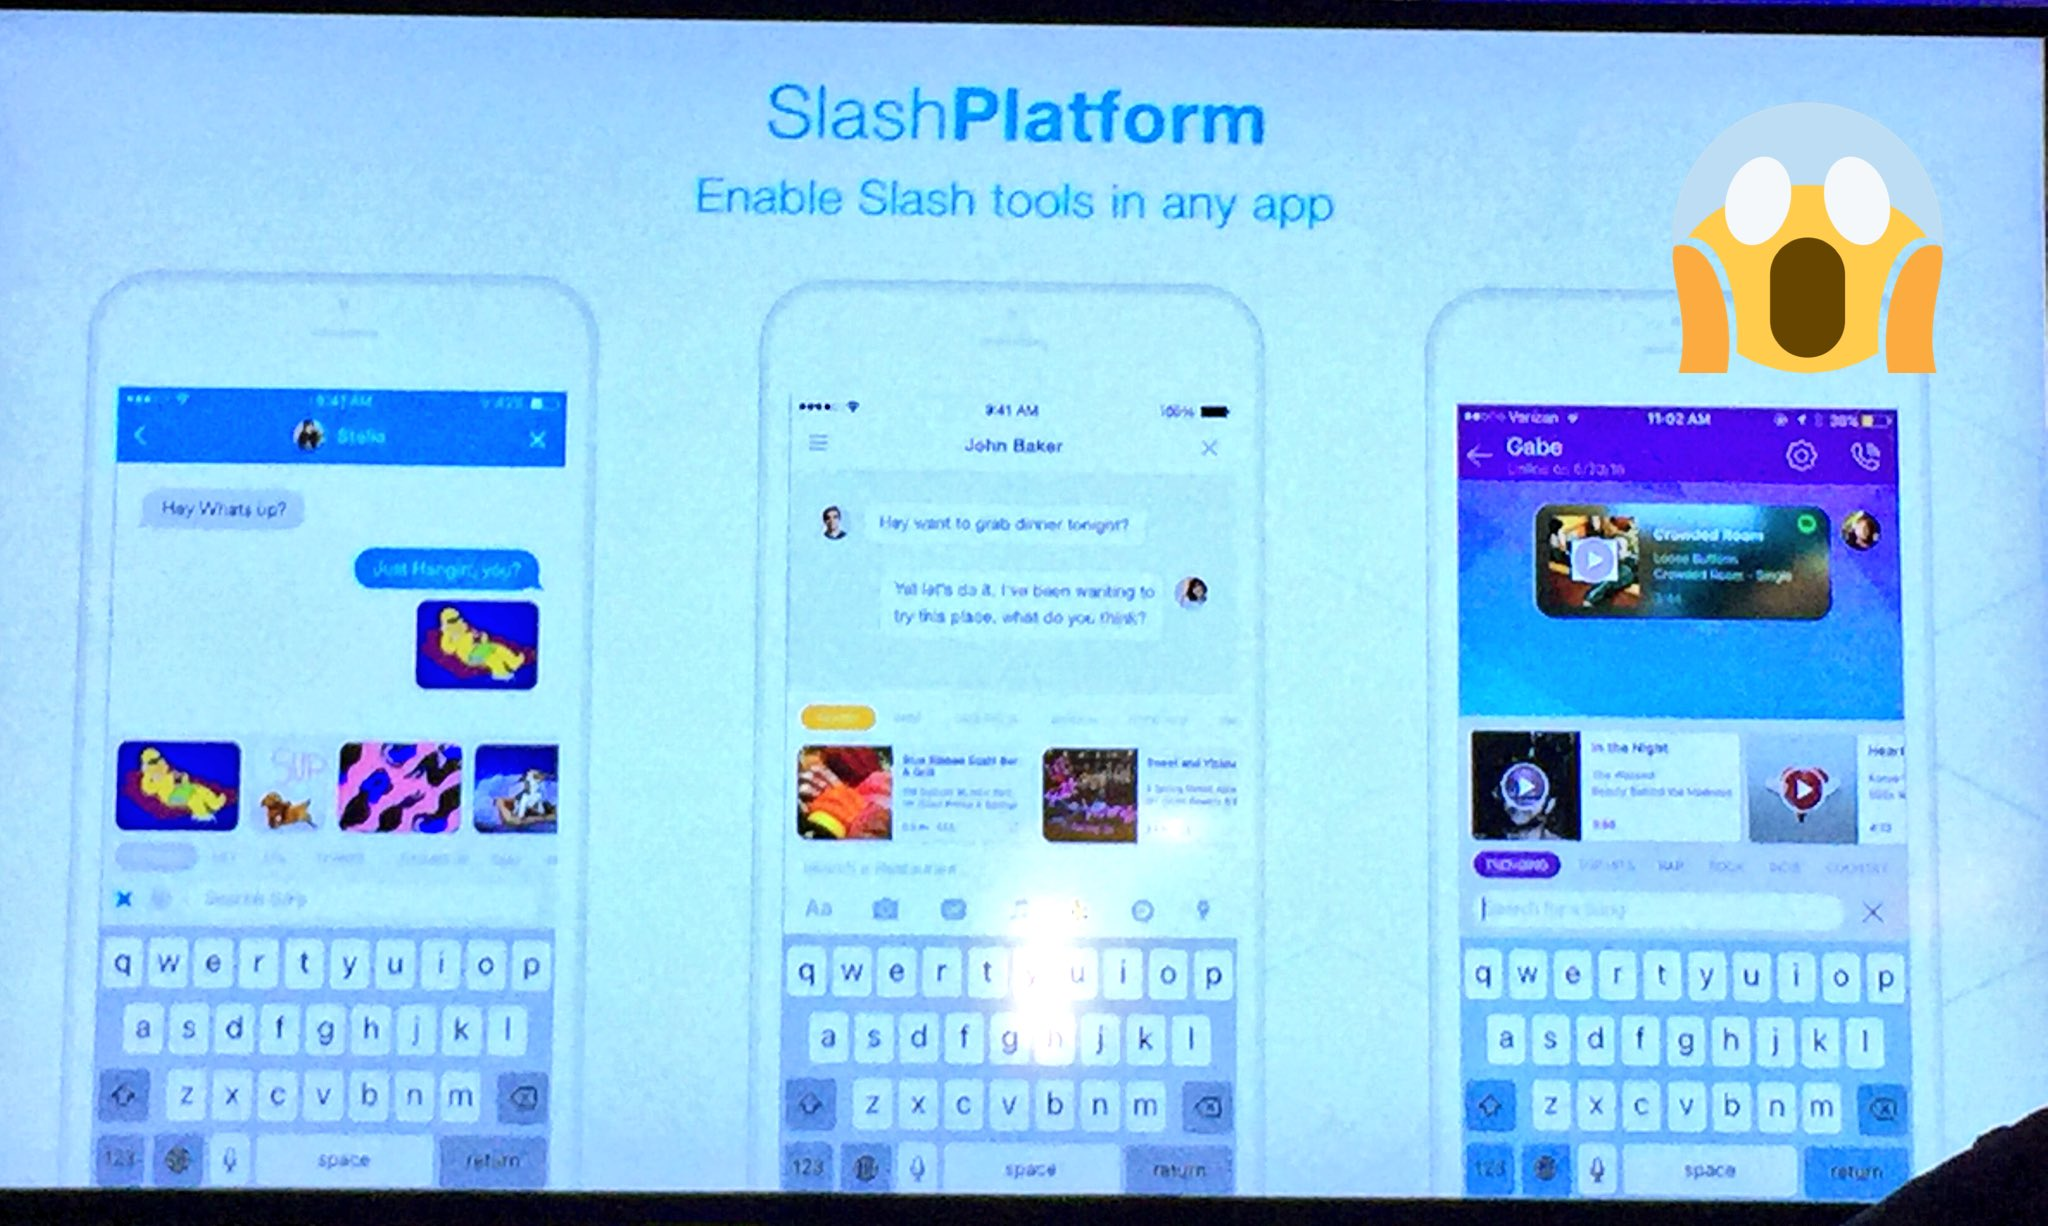 .@slashkeyboard announces slash platform that allows any app to build tools into the keyboard. Cool! #AppFronts https://t.co/eNnOXWaxGl